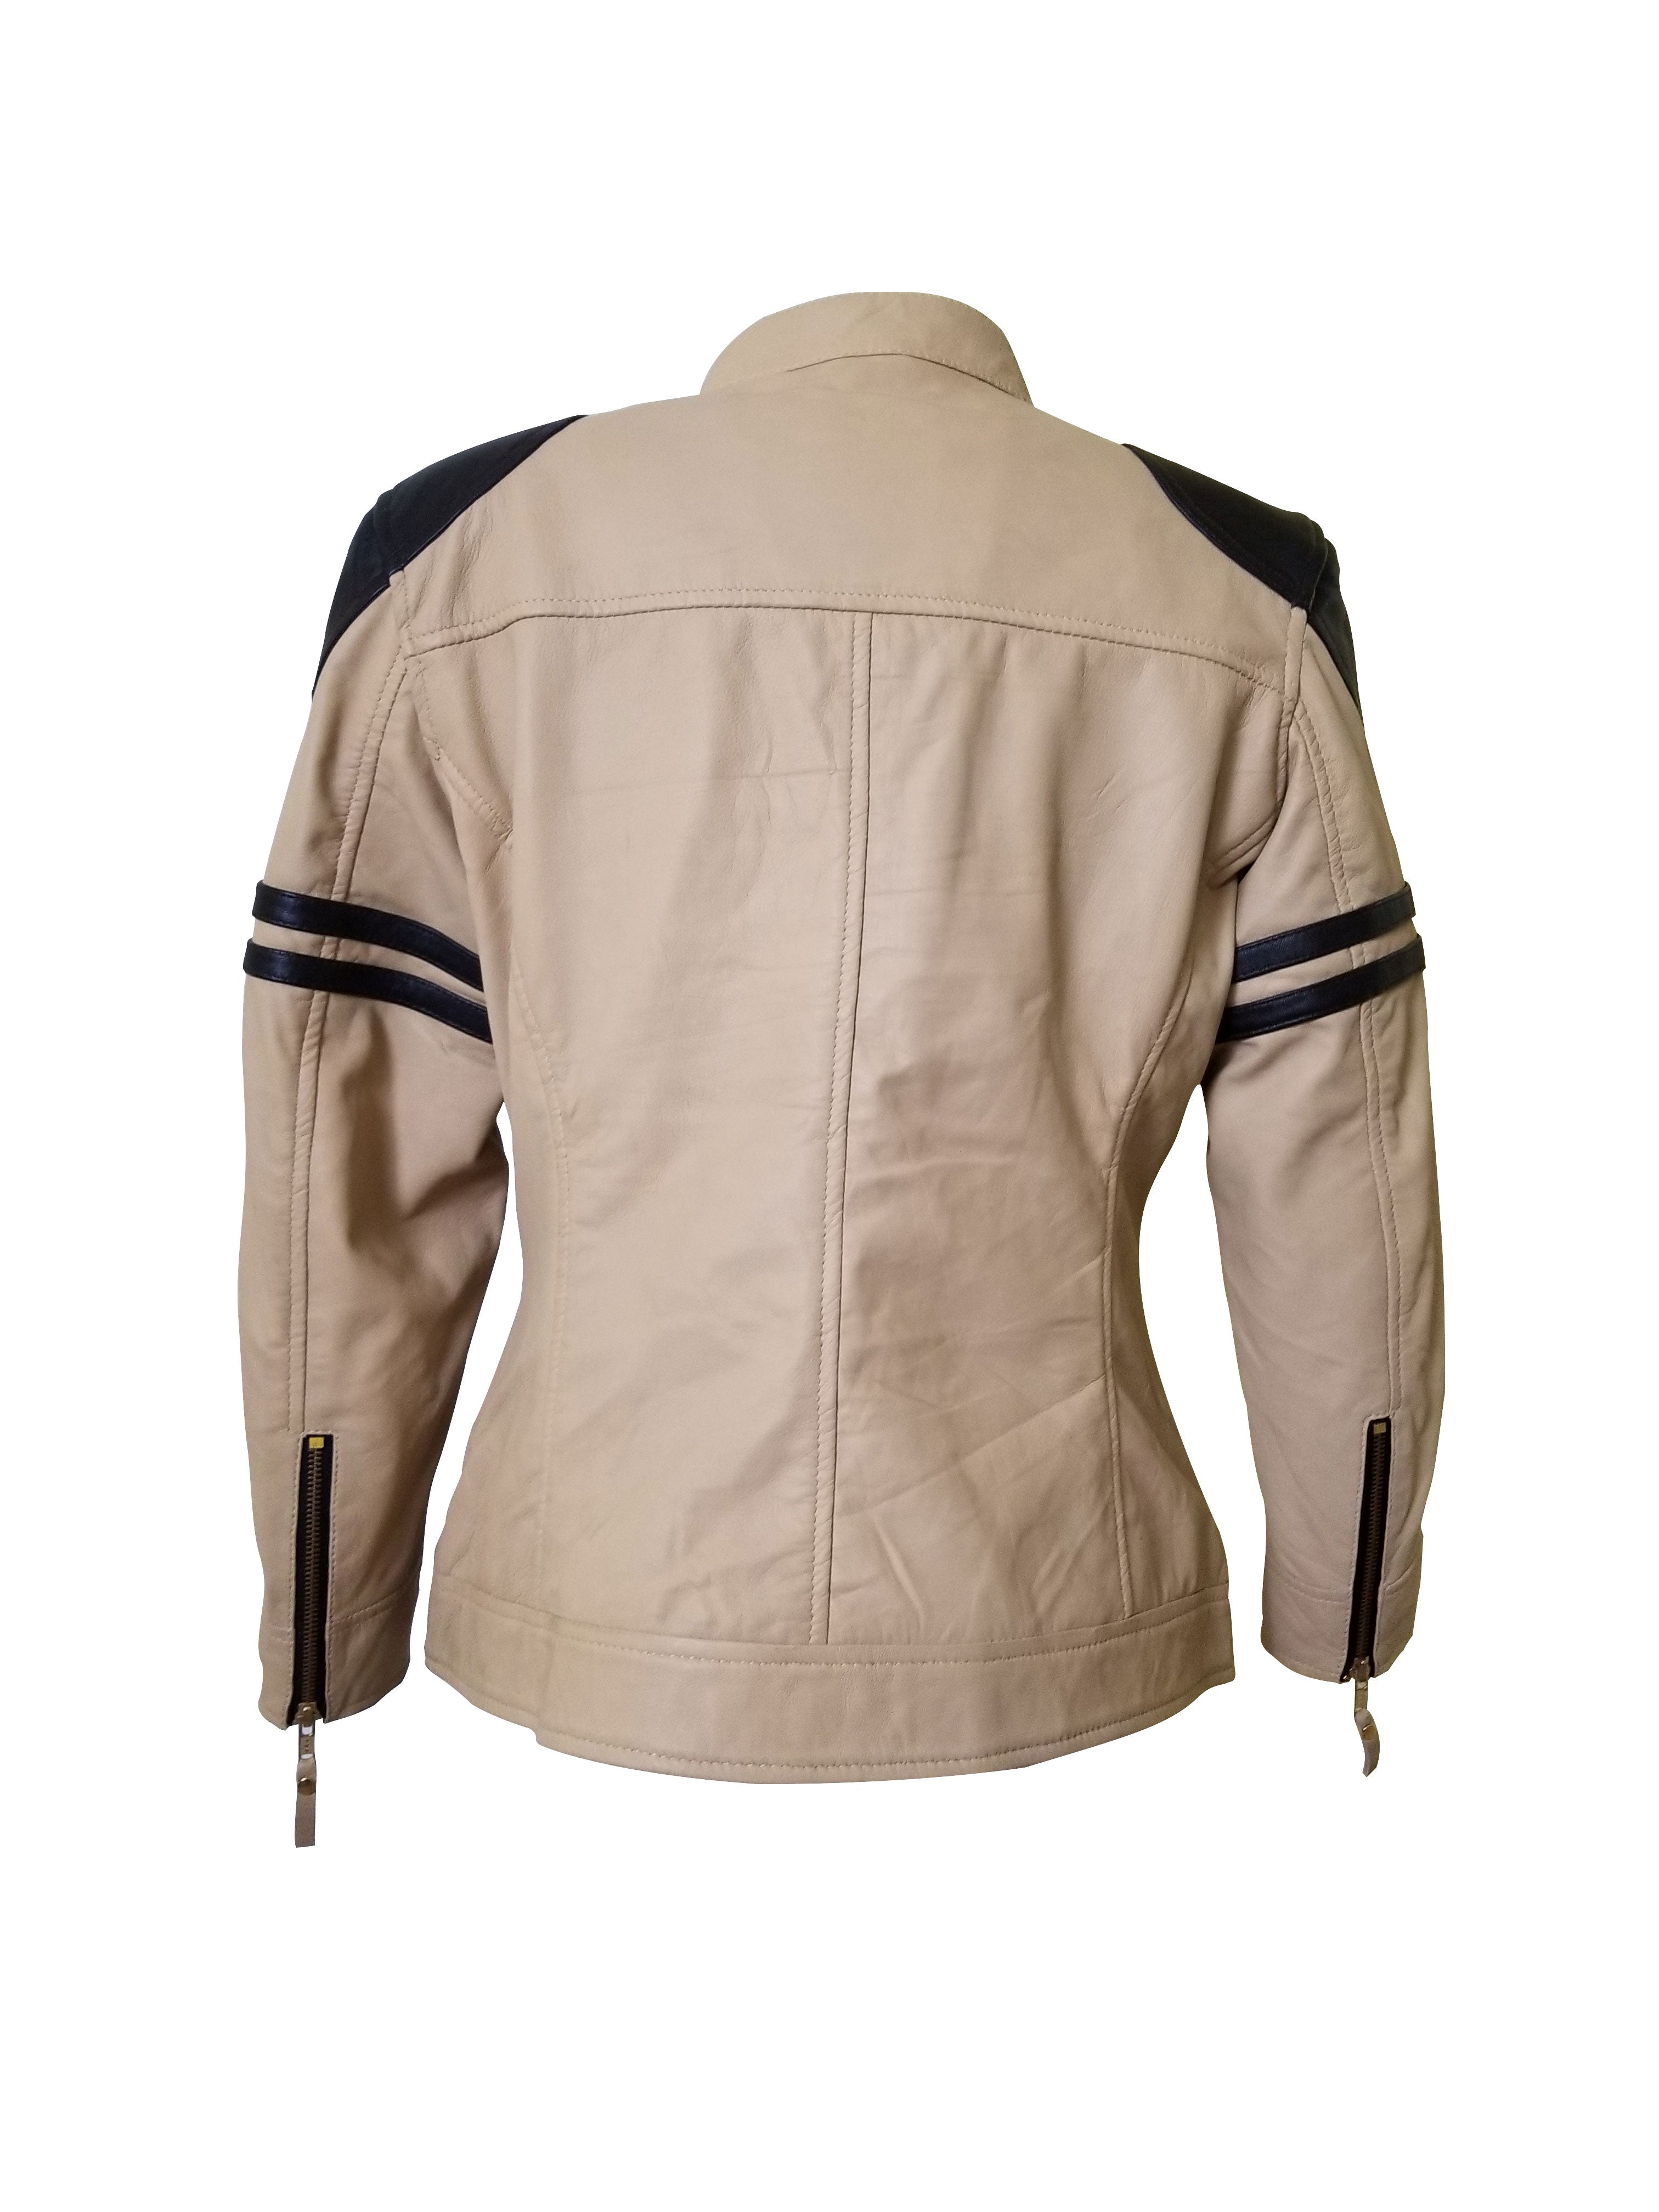 Senan's beige and brown moto style leather jacket